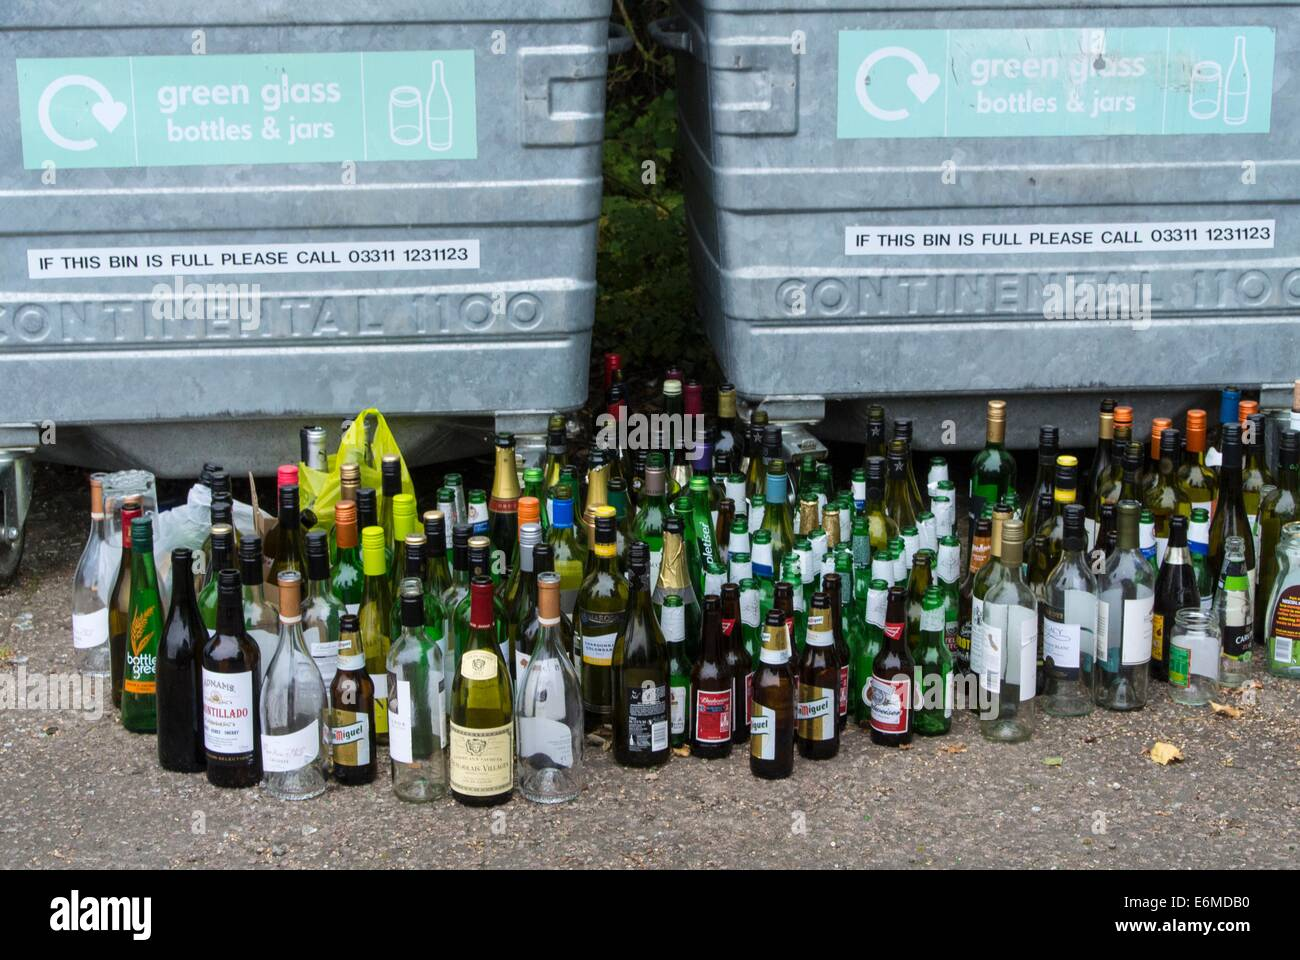 bottle bank Edit tell us where you are located and we can tell you what's available.